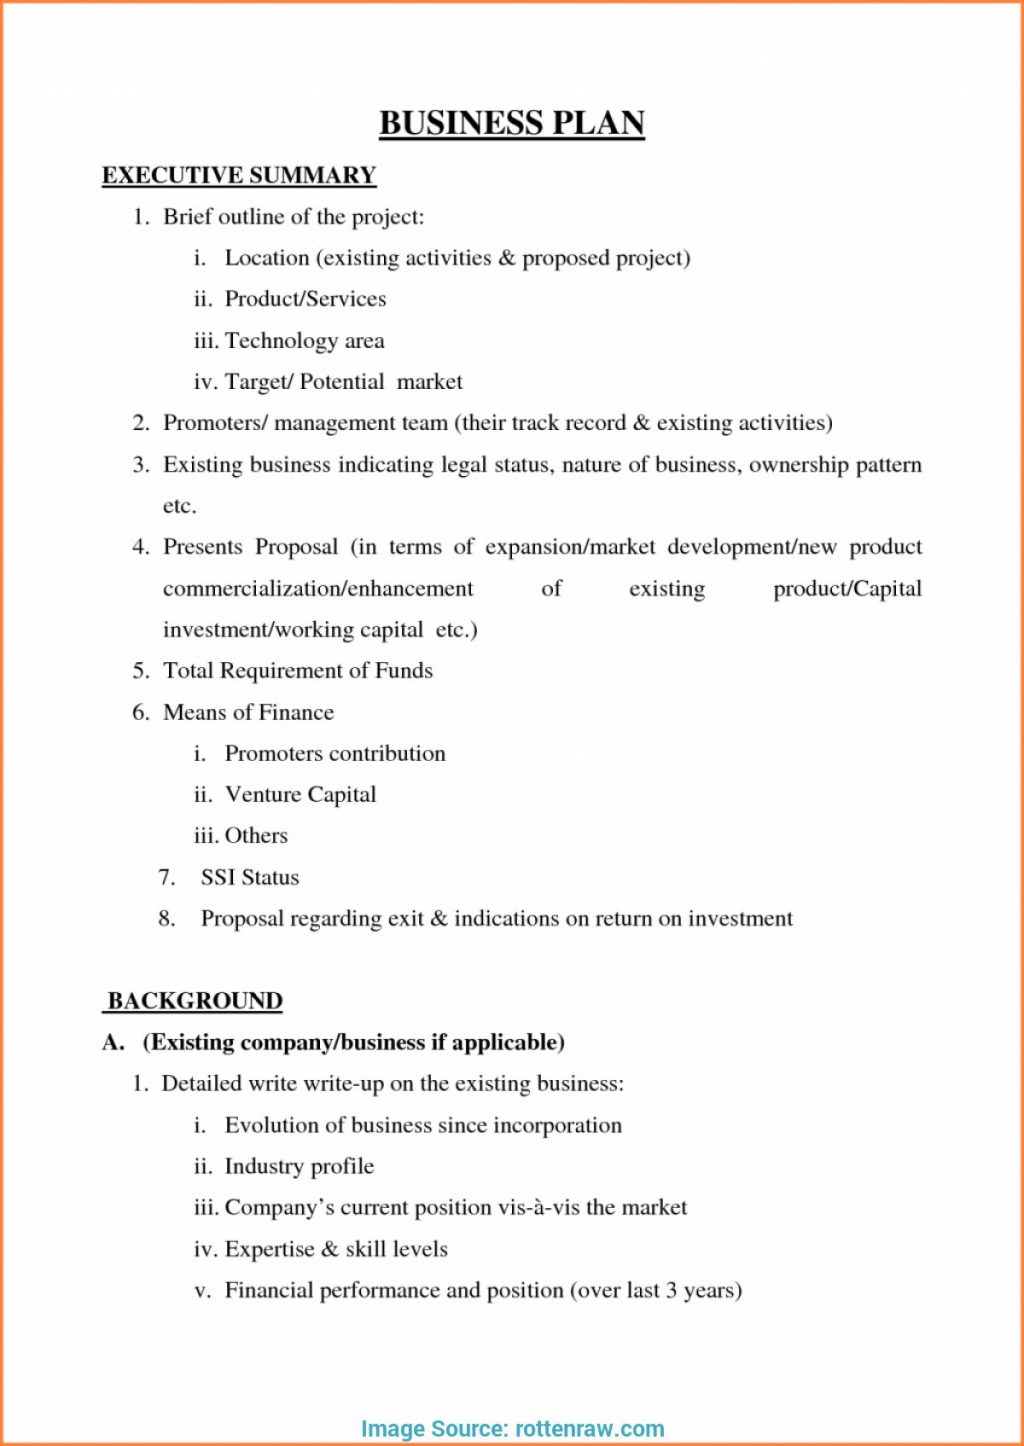 Business Proposal Spreadsheet For Small Business Plan Templates Inventory Spreadsheet Of New Product